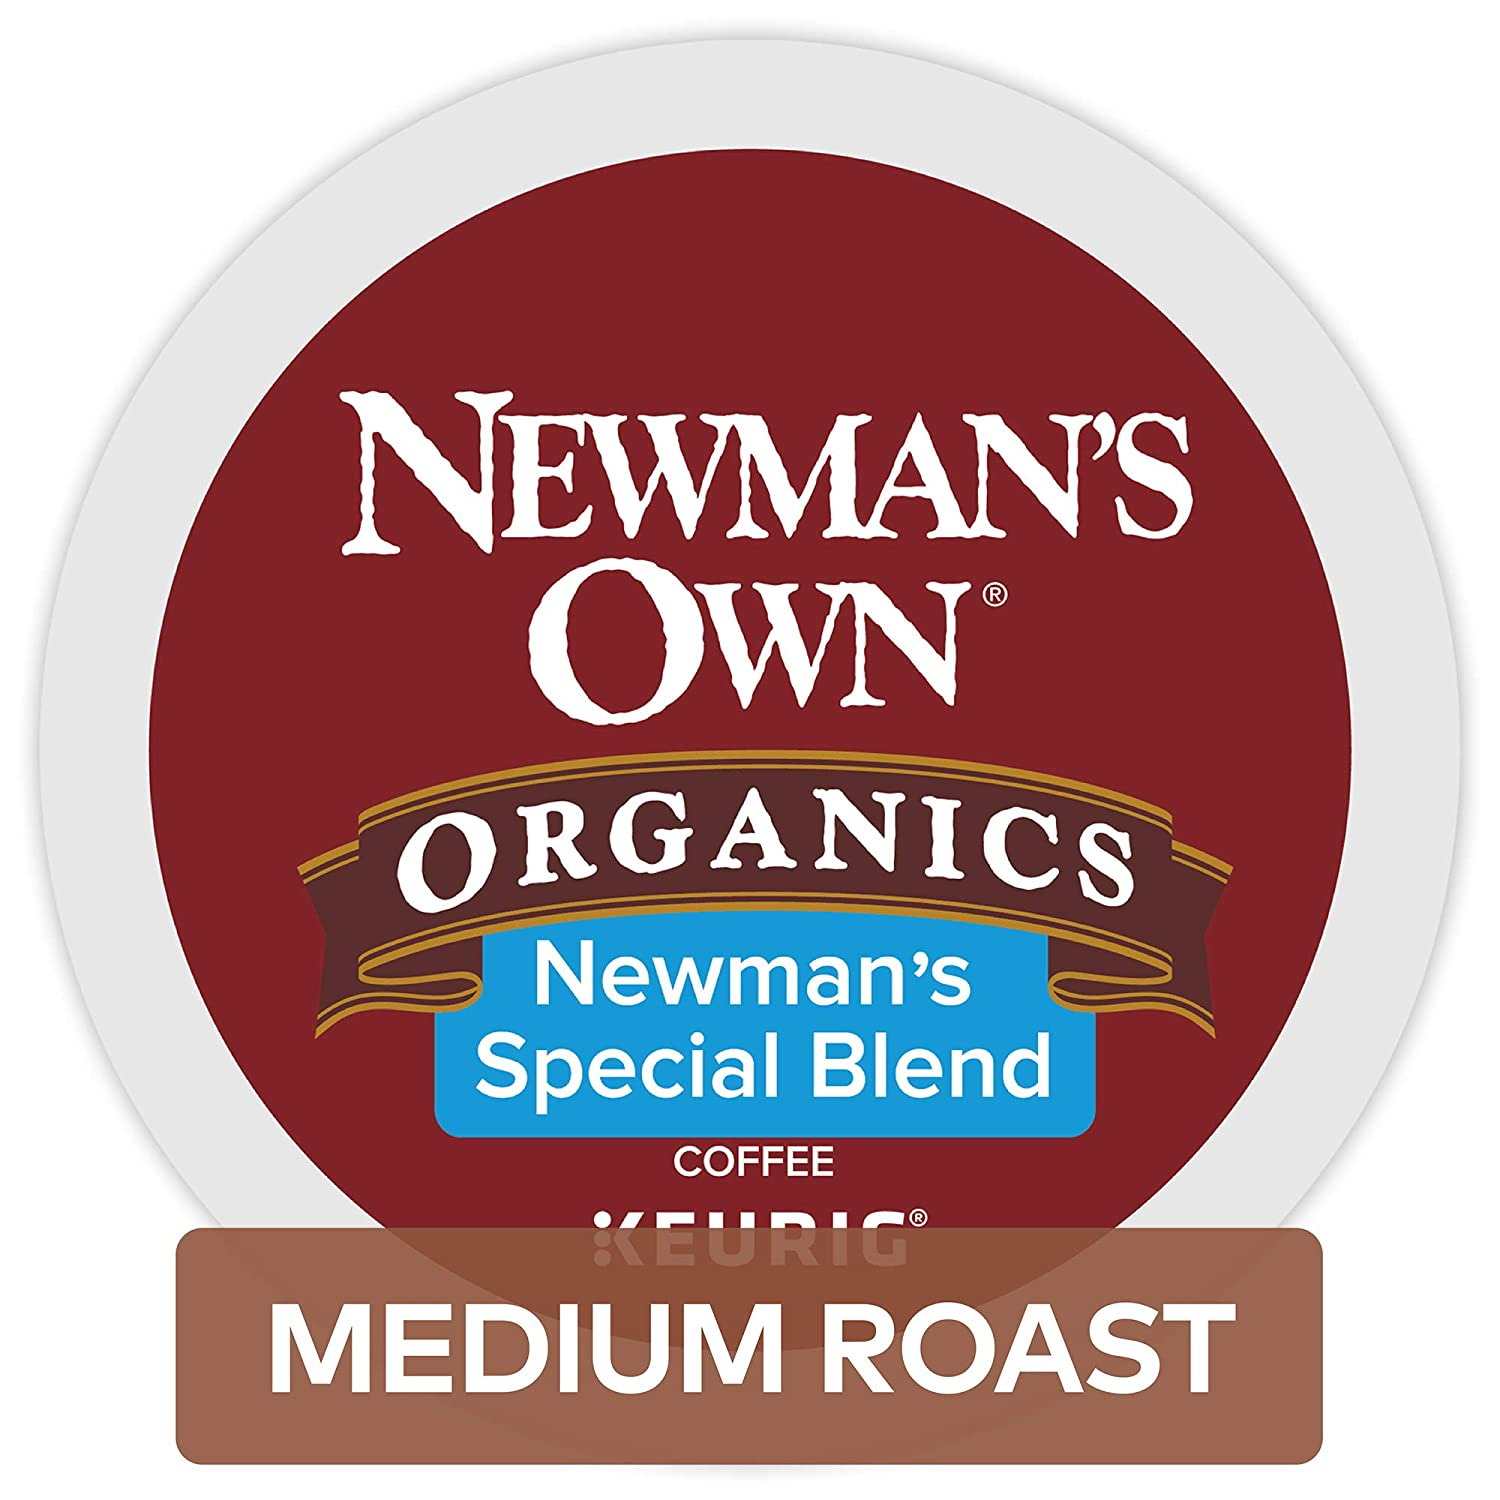 Newman's Own Organics Special Blend Keurig Single-Serve K-Cup Pods, Medium Roast Coffee, 96 Count